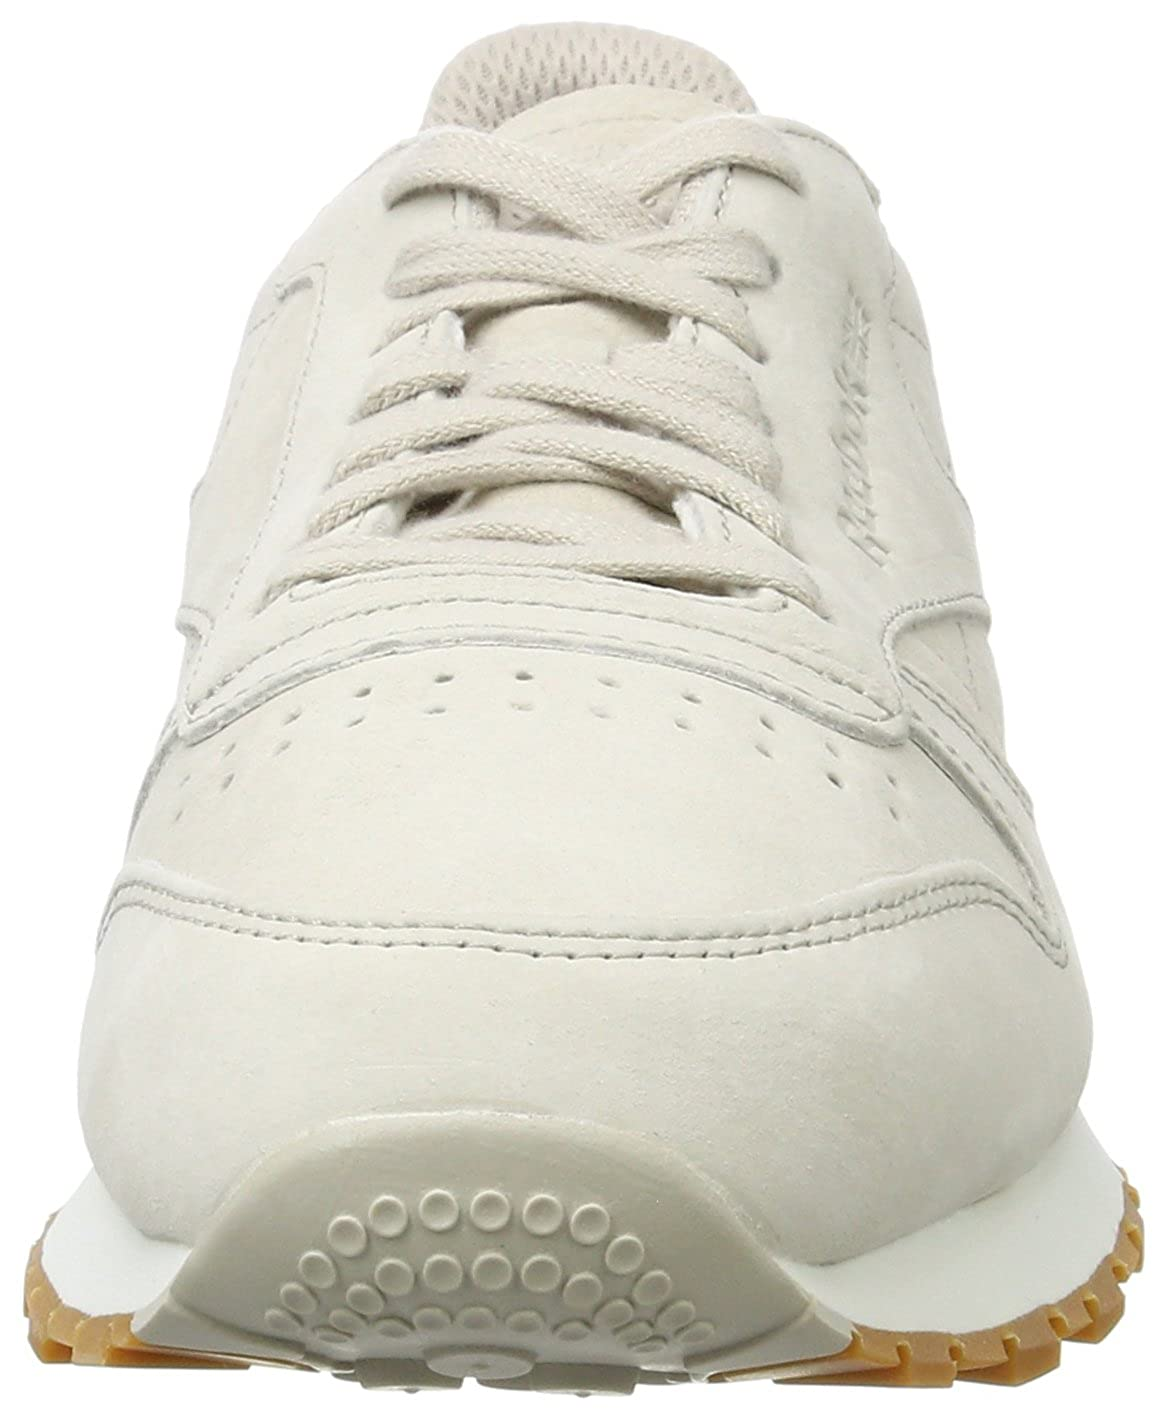 ababac9d04e Reebok Classic Leather SG